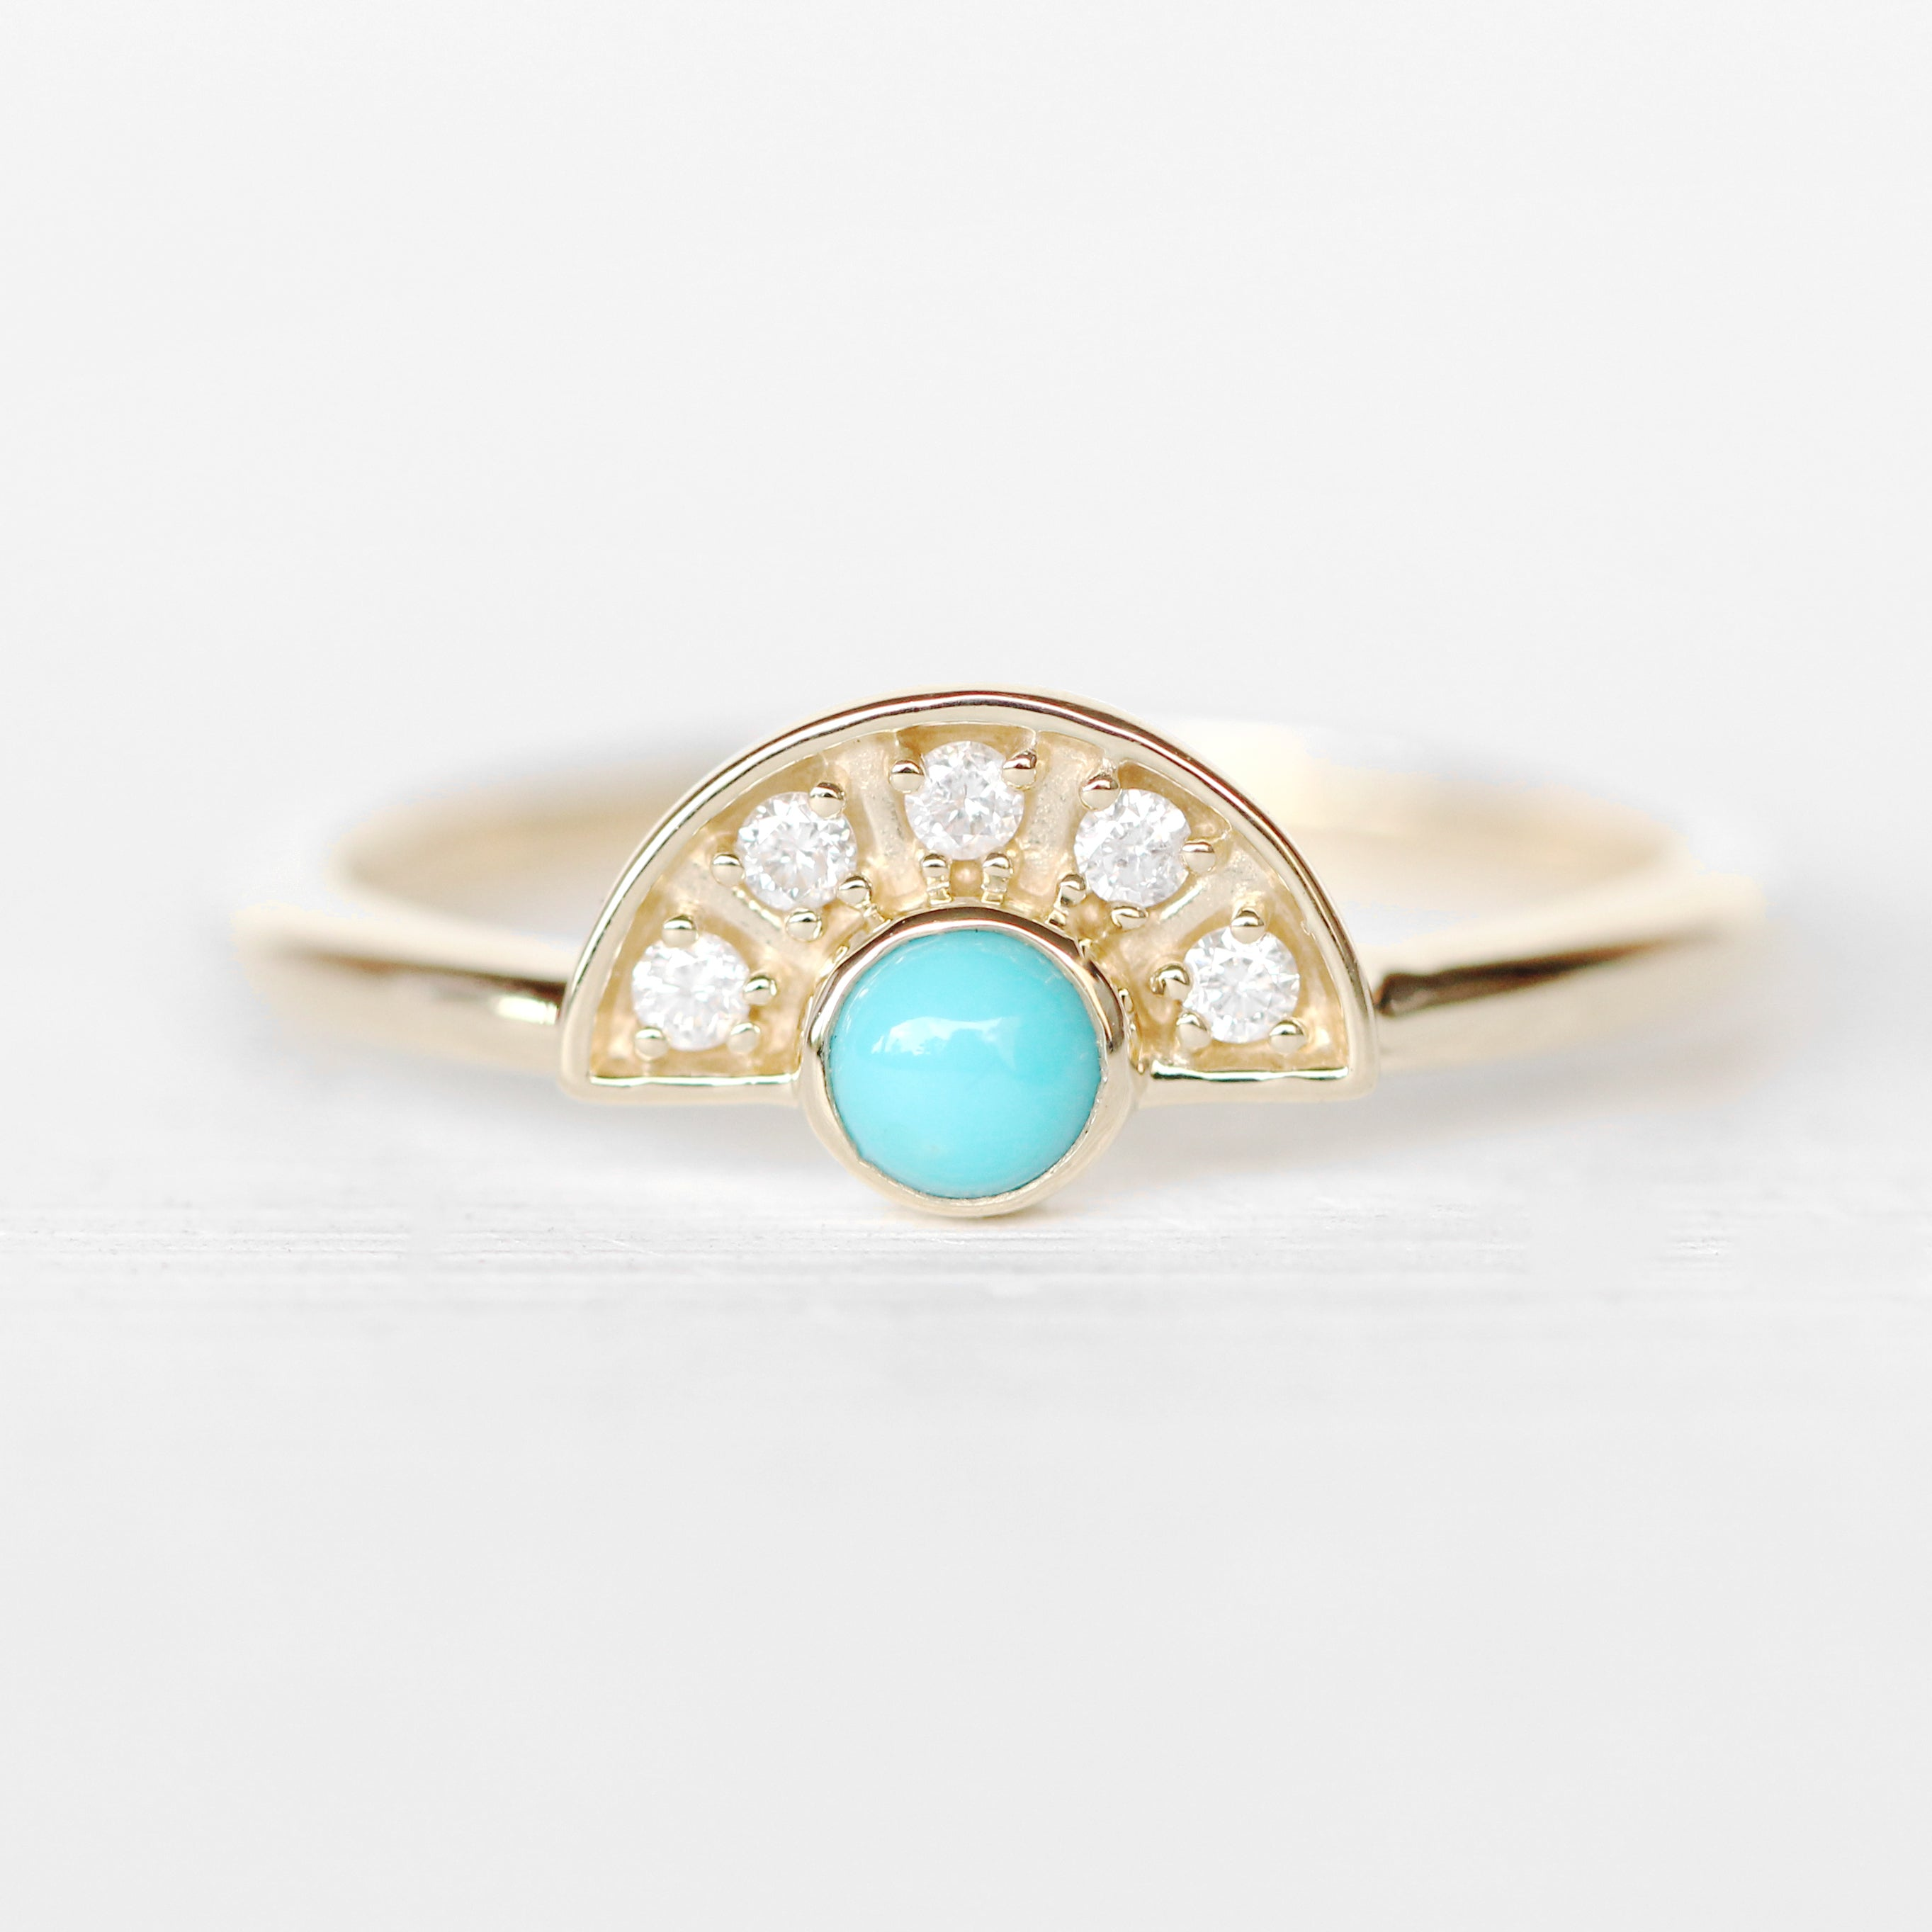 Dottie Turquoise + Diamond Stackable or Wedding Ring - Your choice of metal - Custom